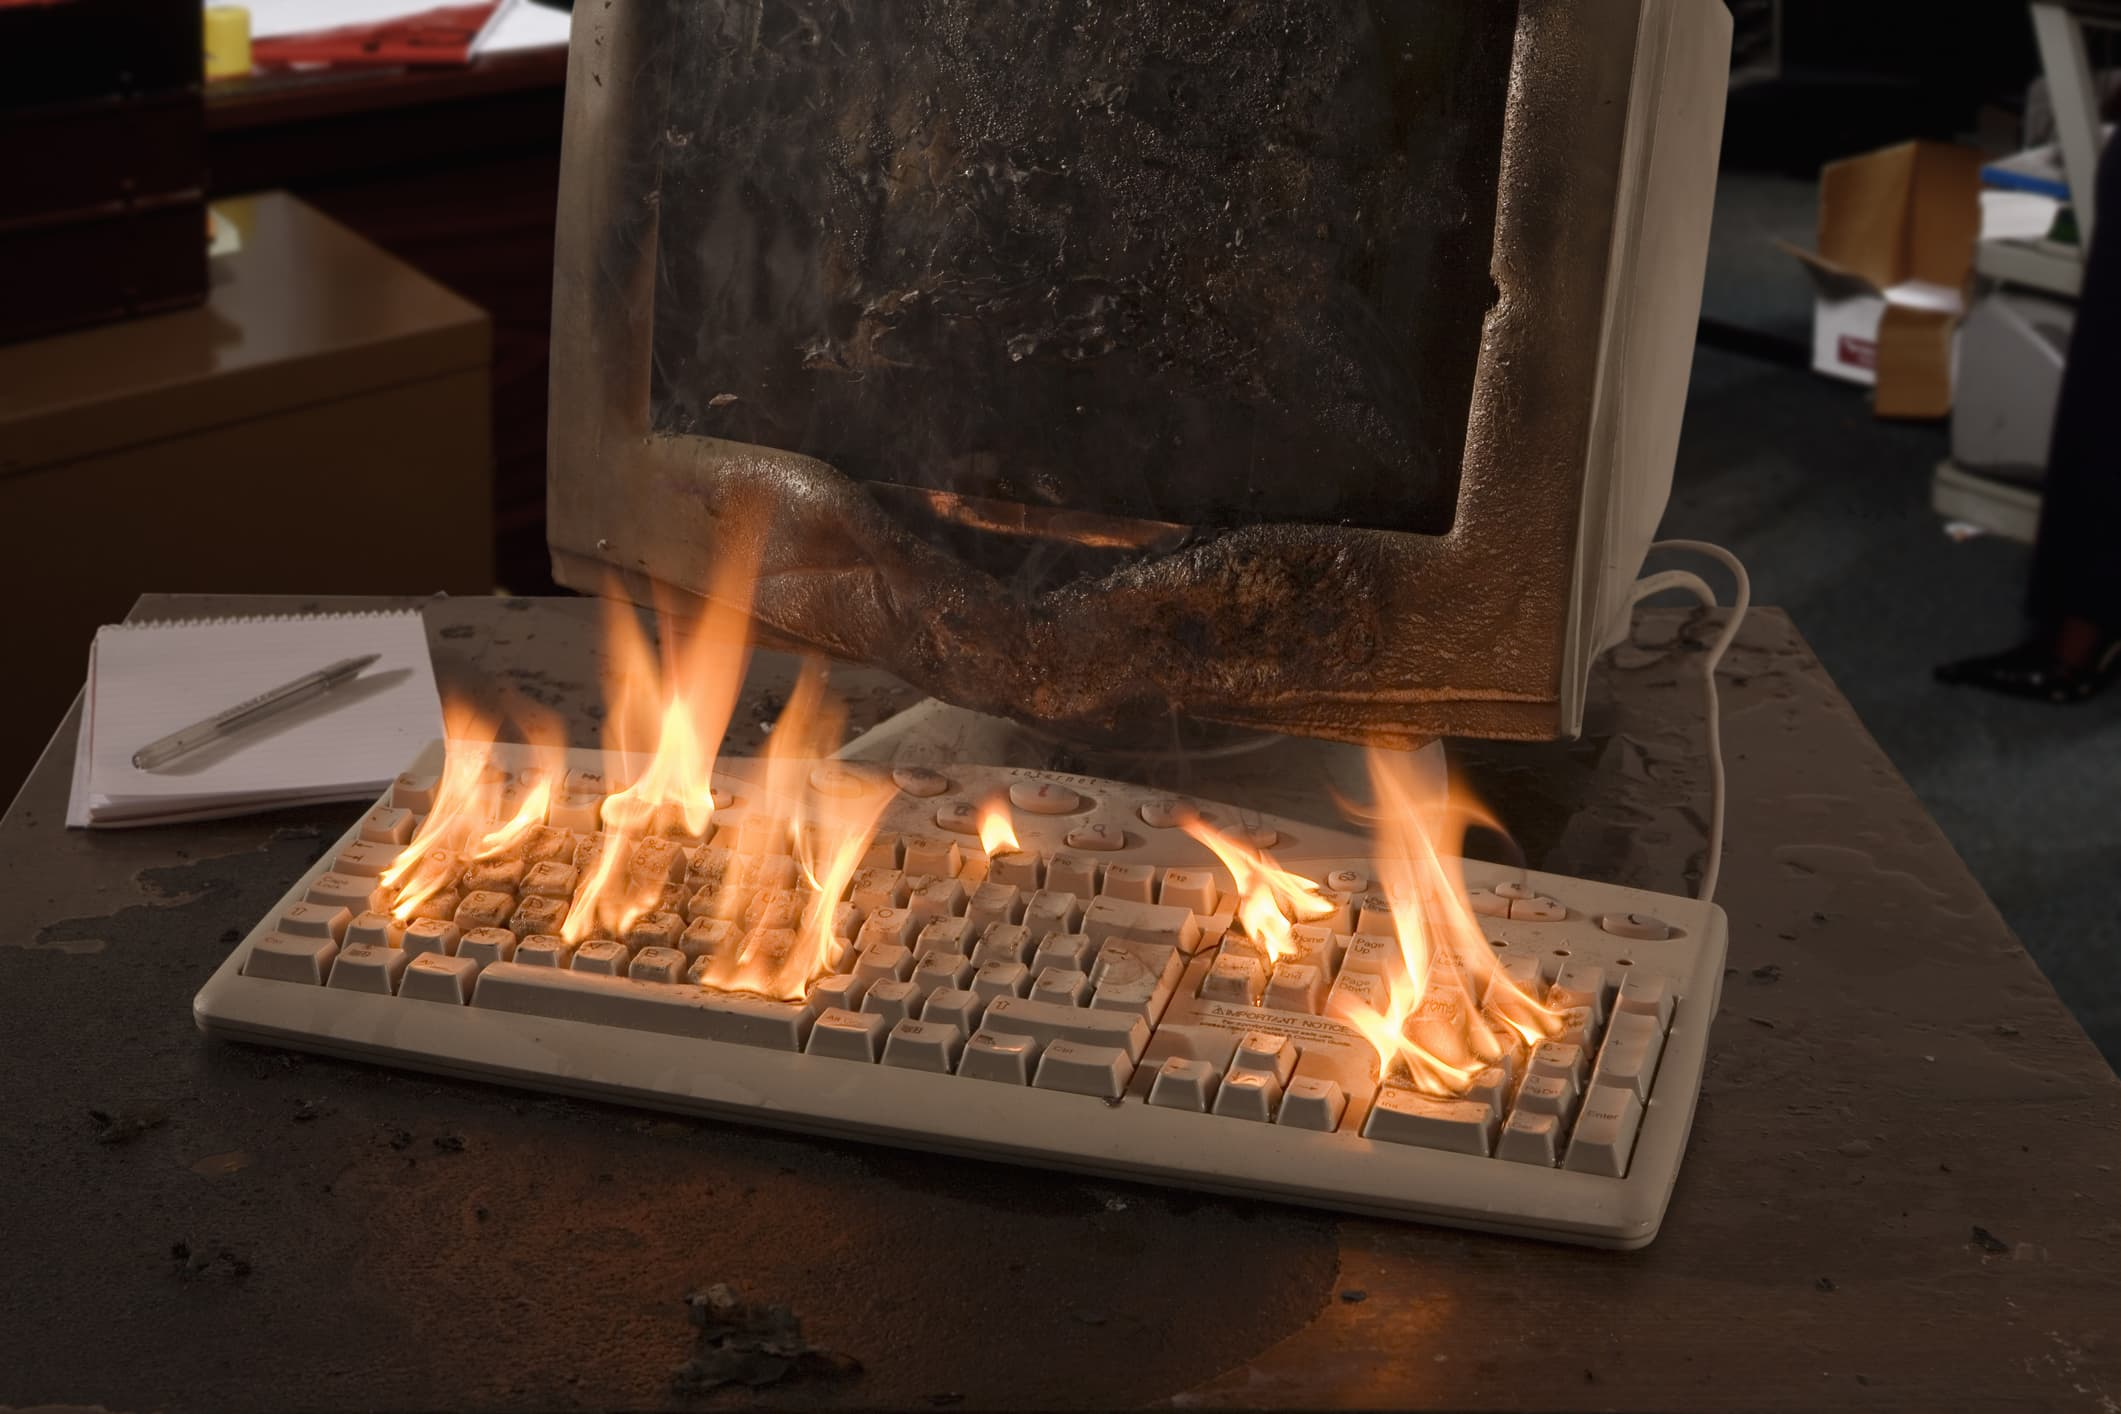 Keyboard on fire, computer, hacking